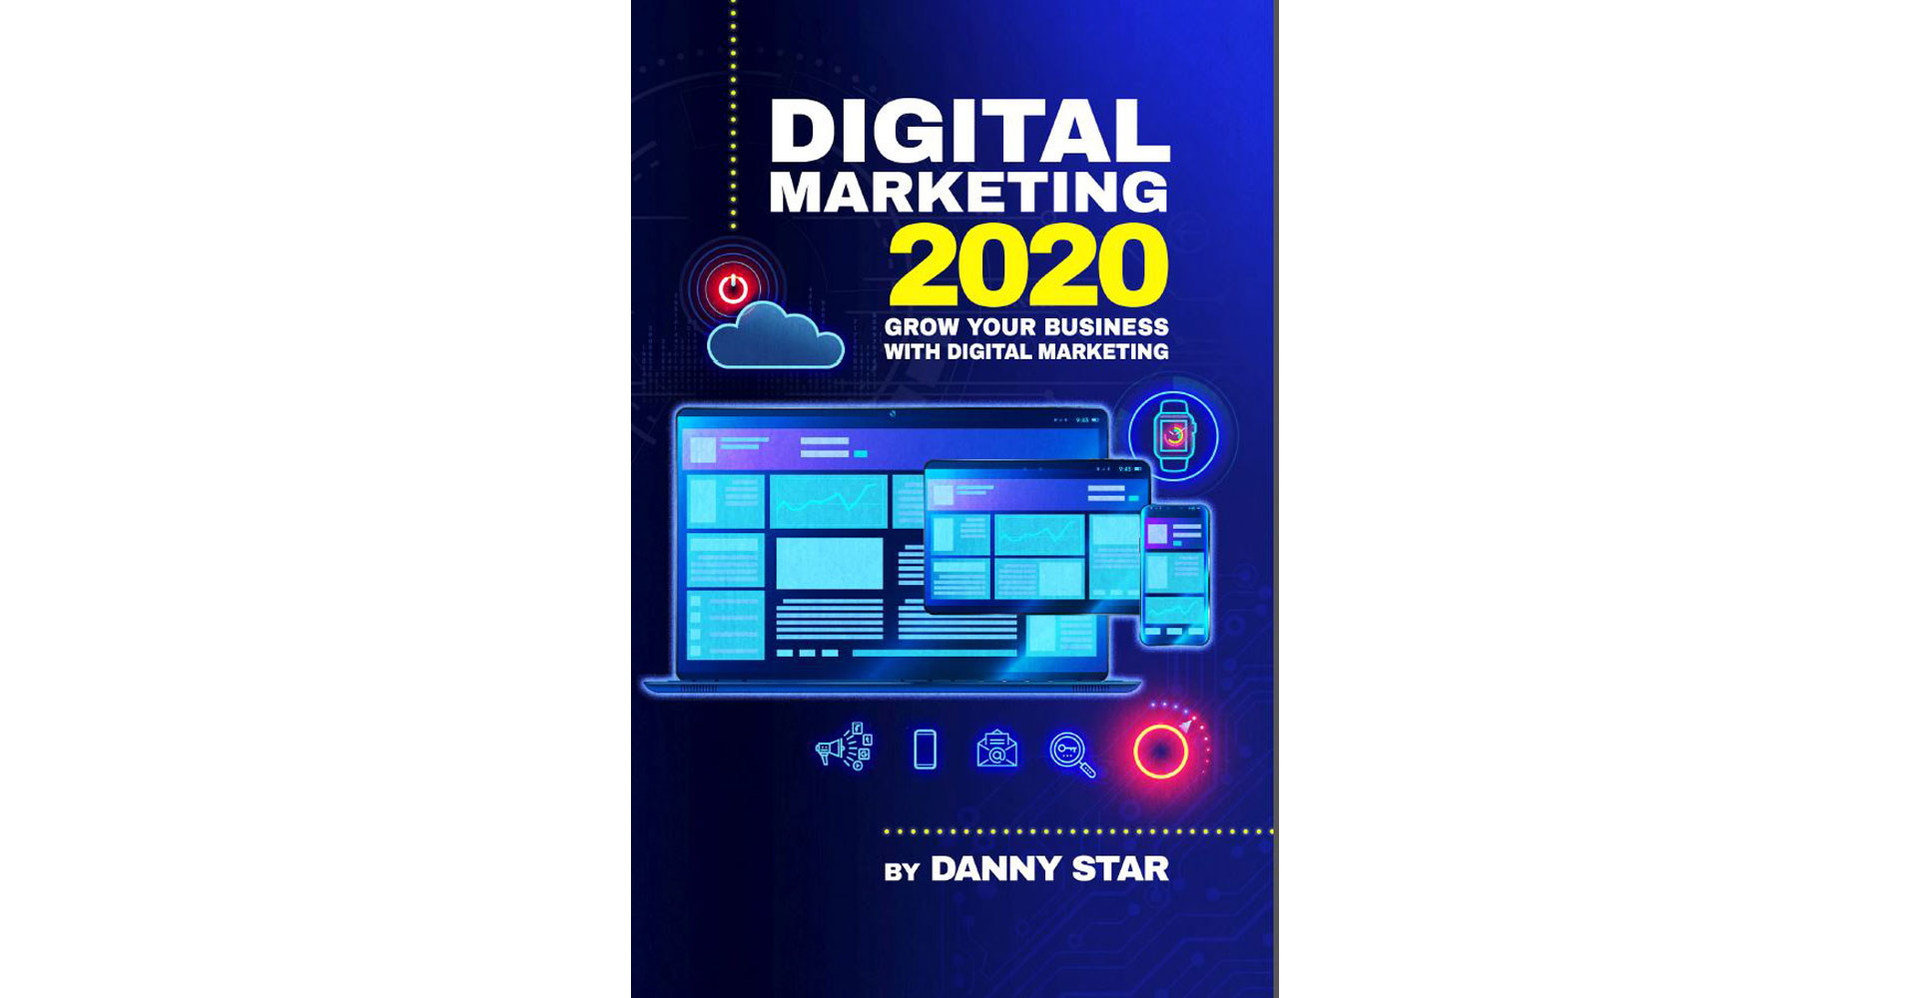 SEO Expert Danny Star Publishes First Book: Digital Marketing 2020